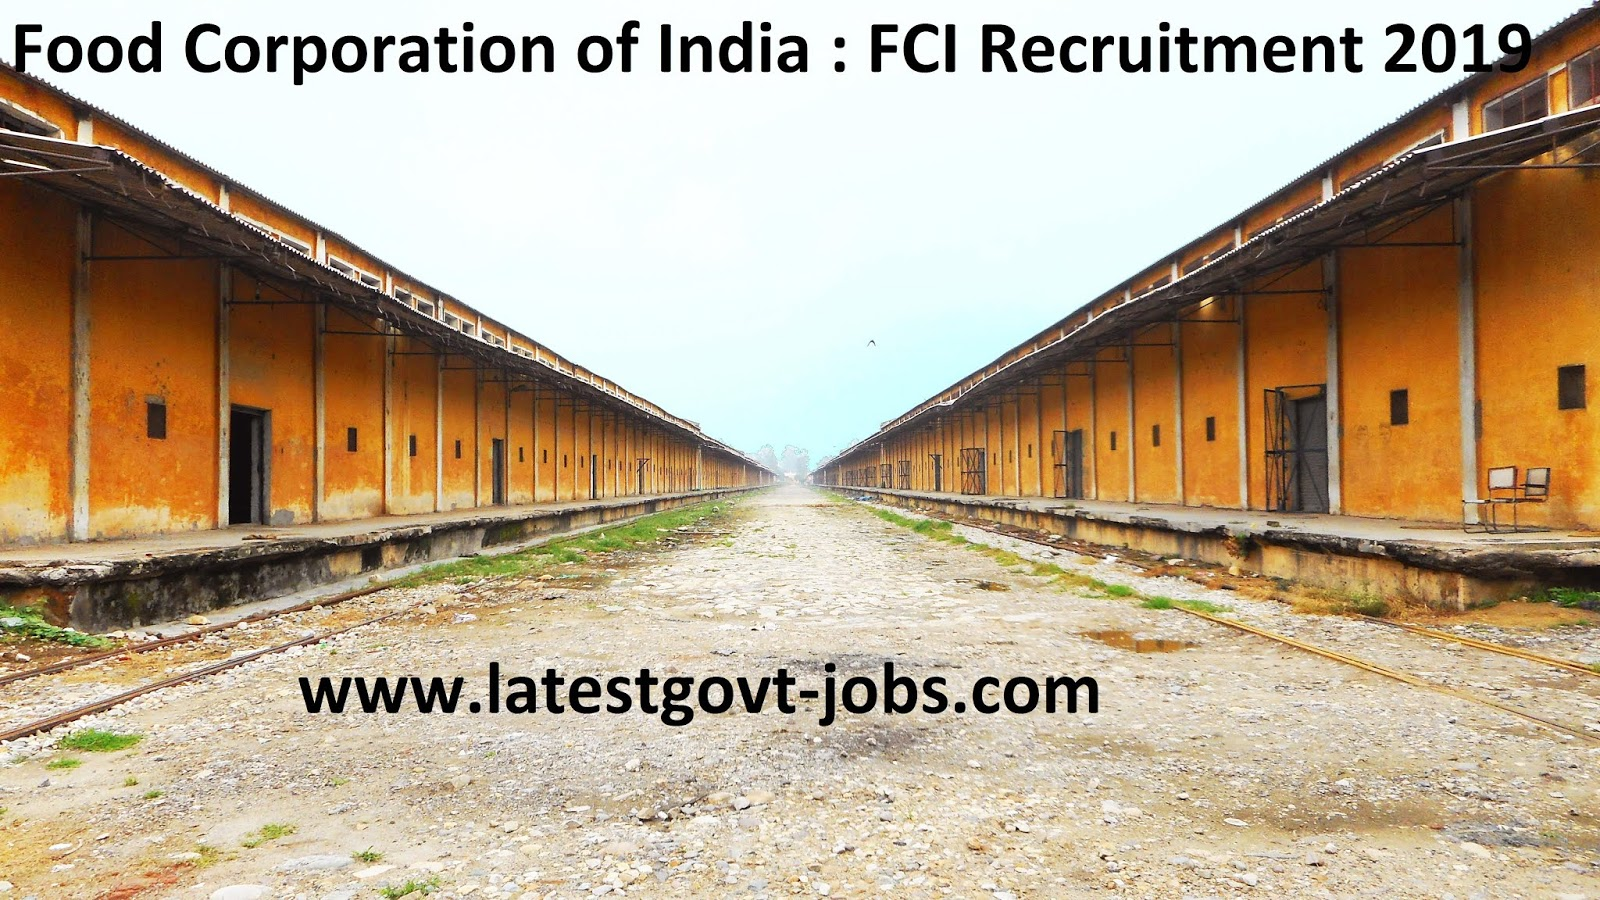 FCI Recruitment 2019 - Graduation, Engineering, Diploma Pass - 4103 Govt jobs - Apply Online